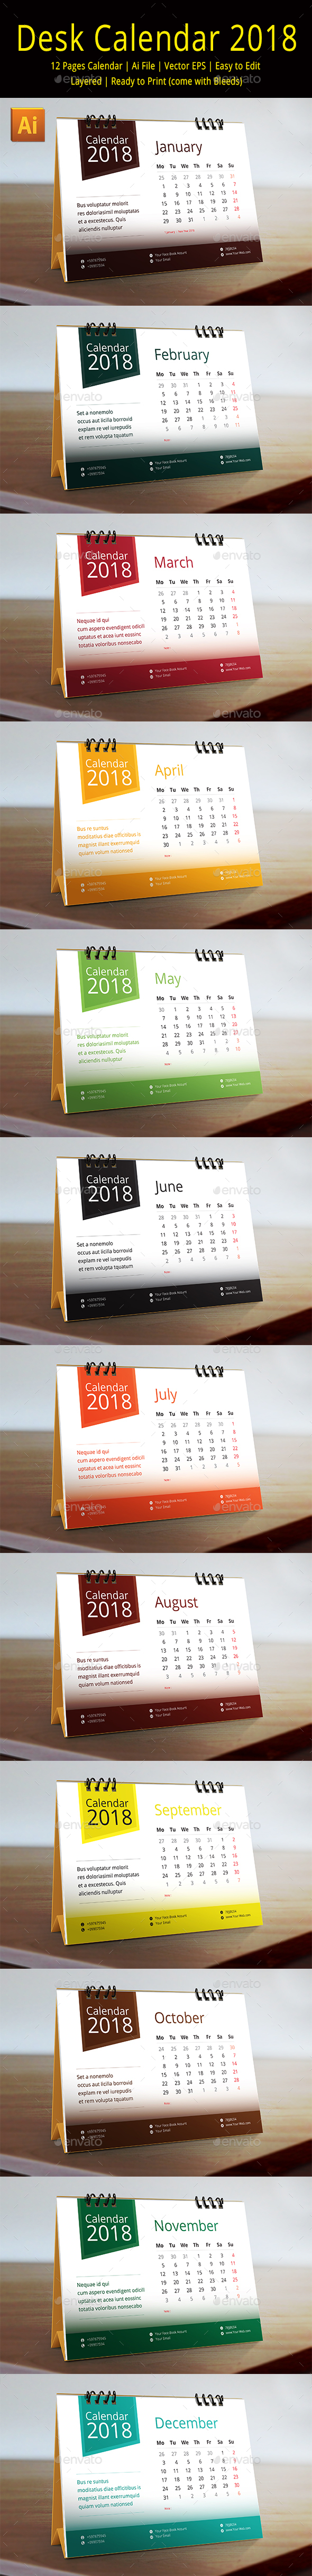 2018 Desk Calendar - Calendars Stationery